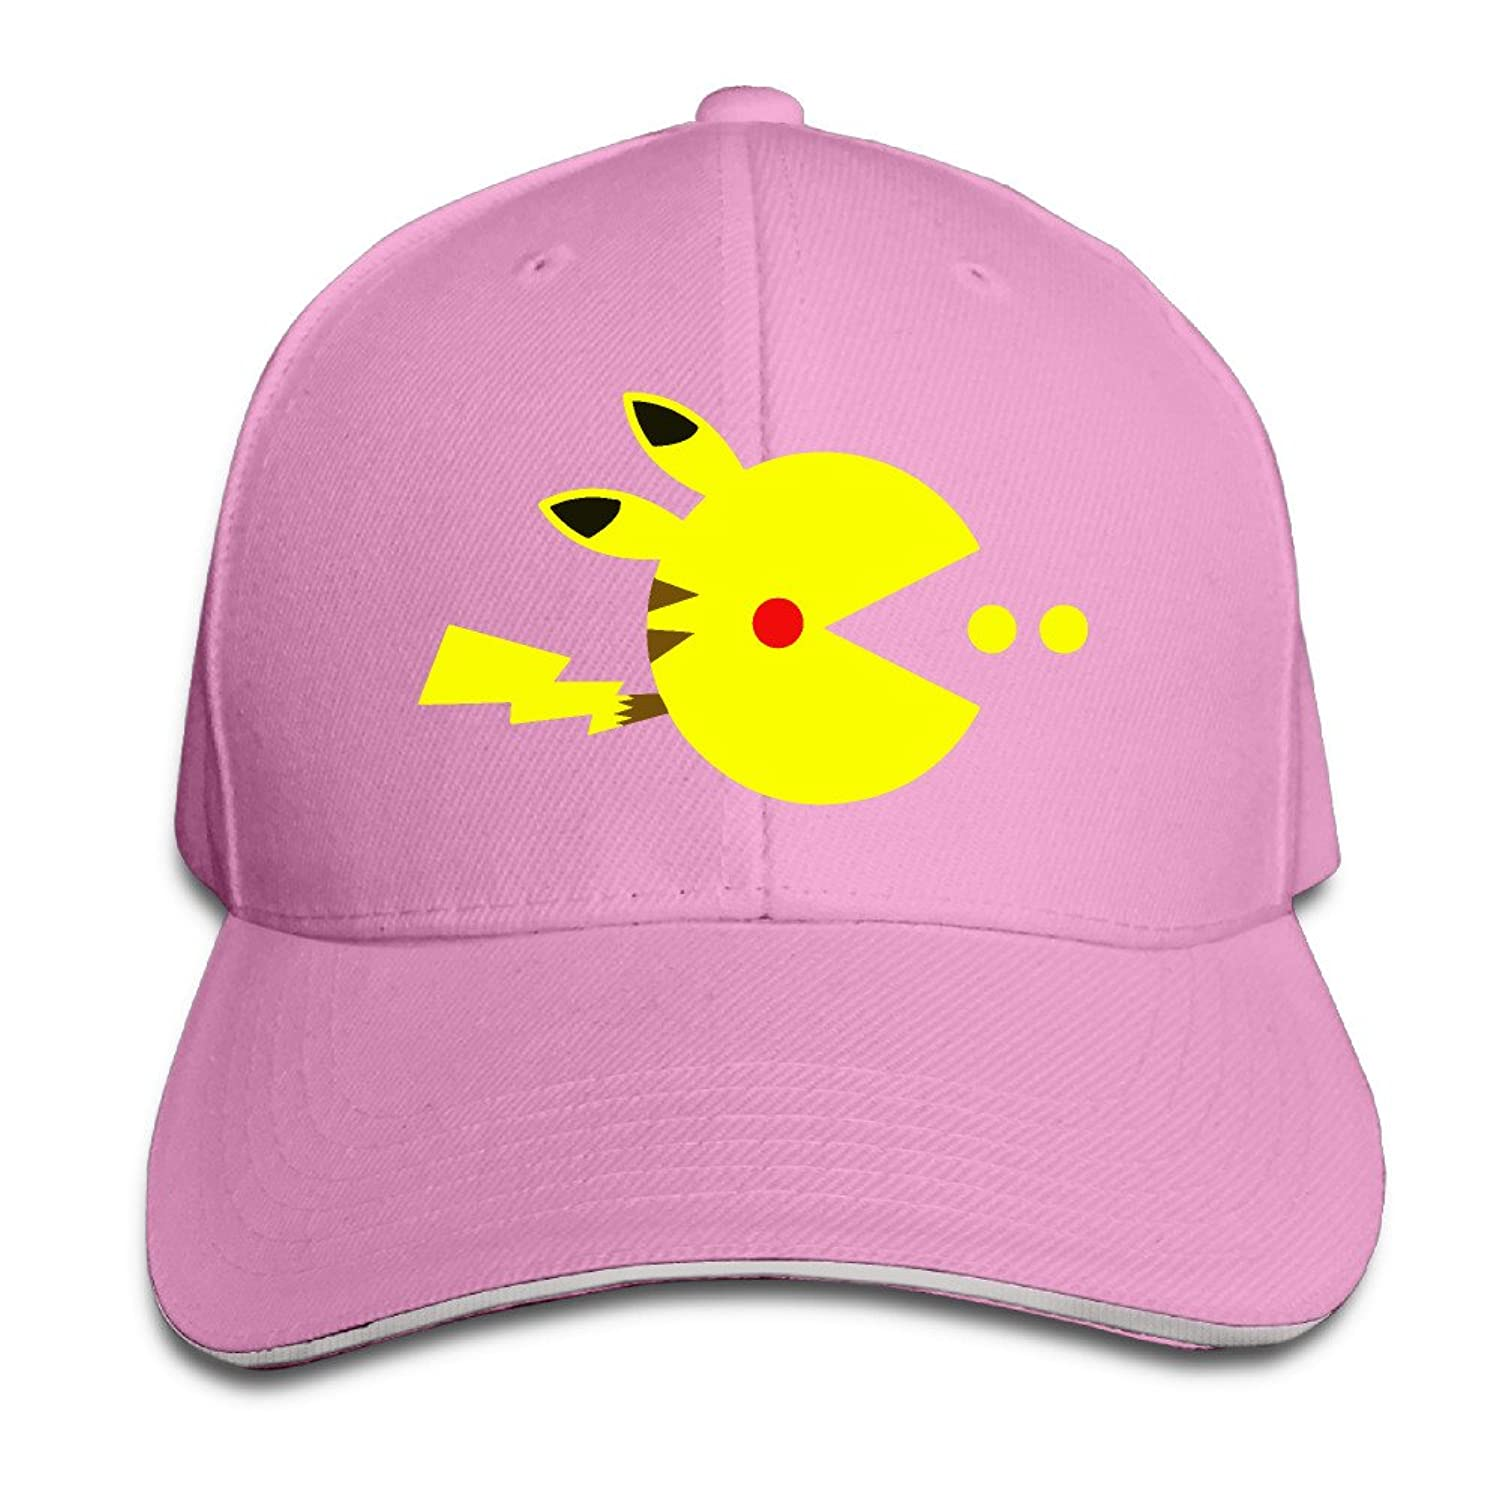 MYDT1 Pac-pikachu Outdoor Sandwich Peaked Caps Hats For Unisex